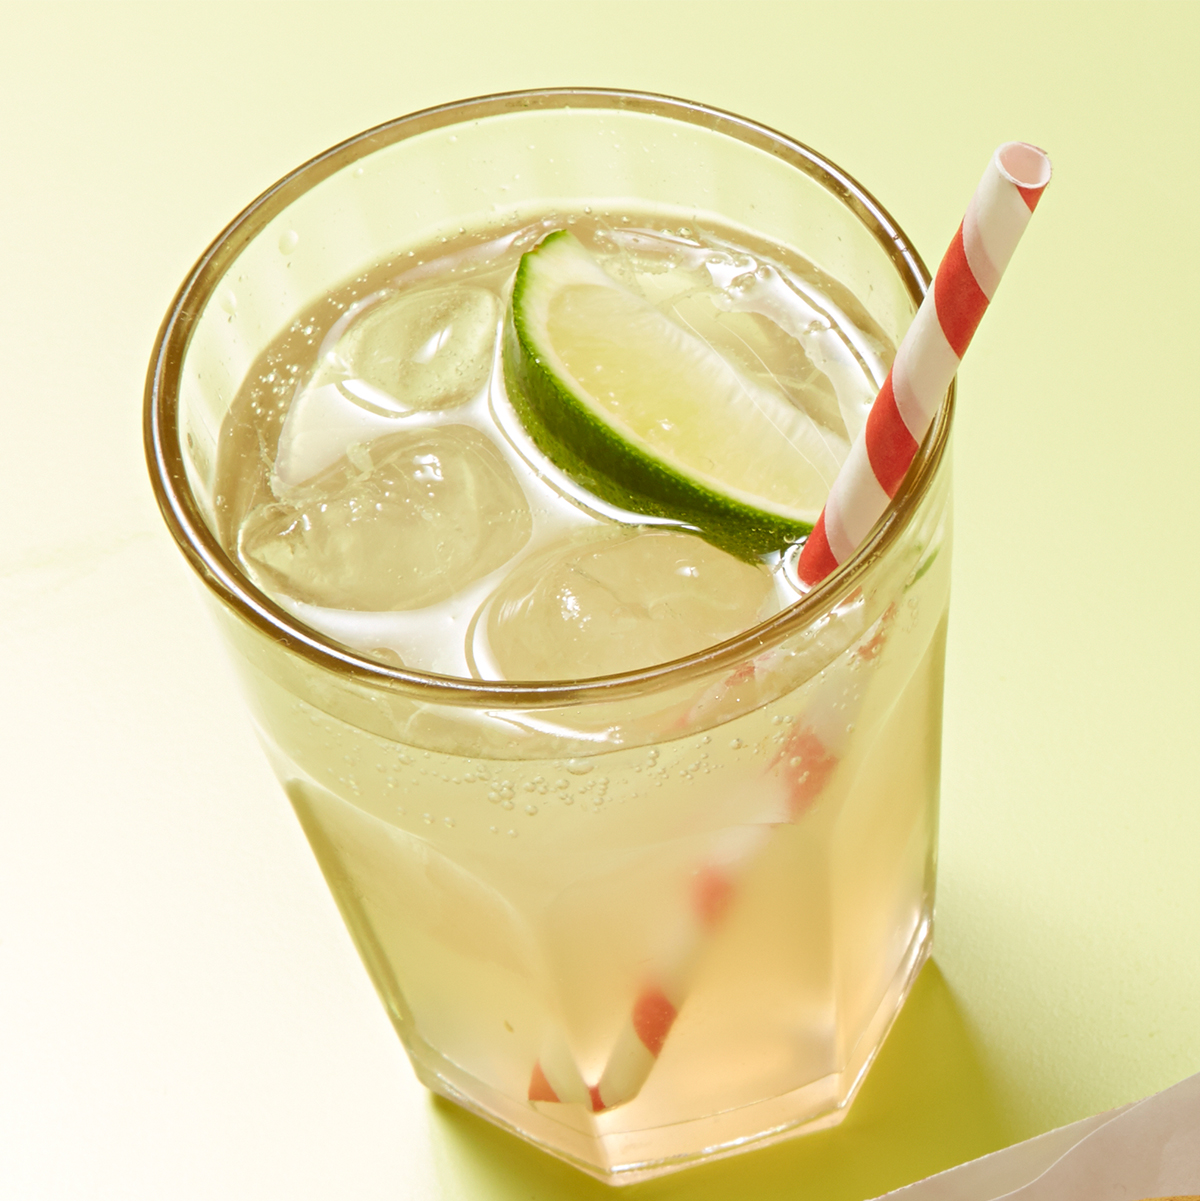 zesty ginger ale with striped straw